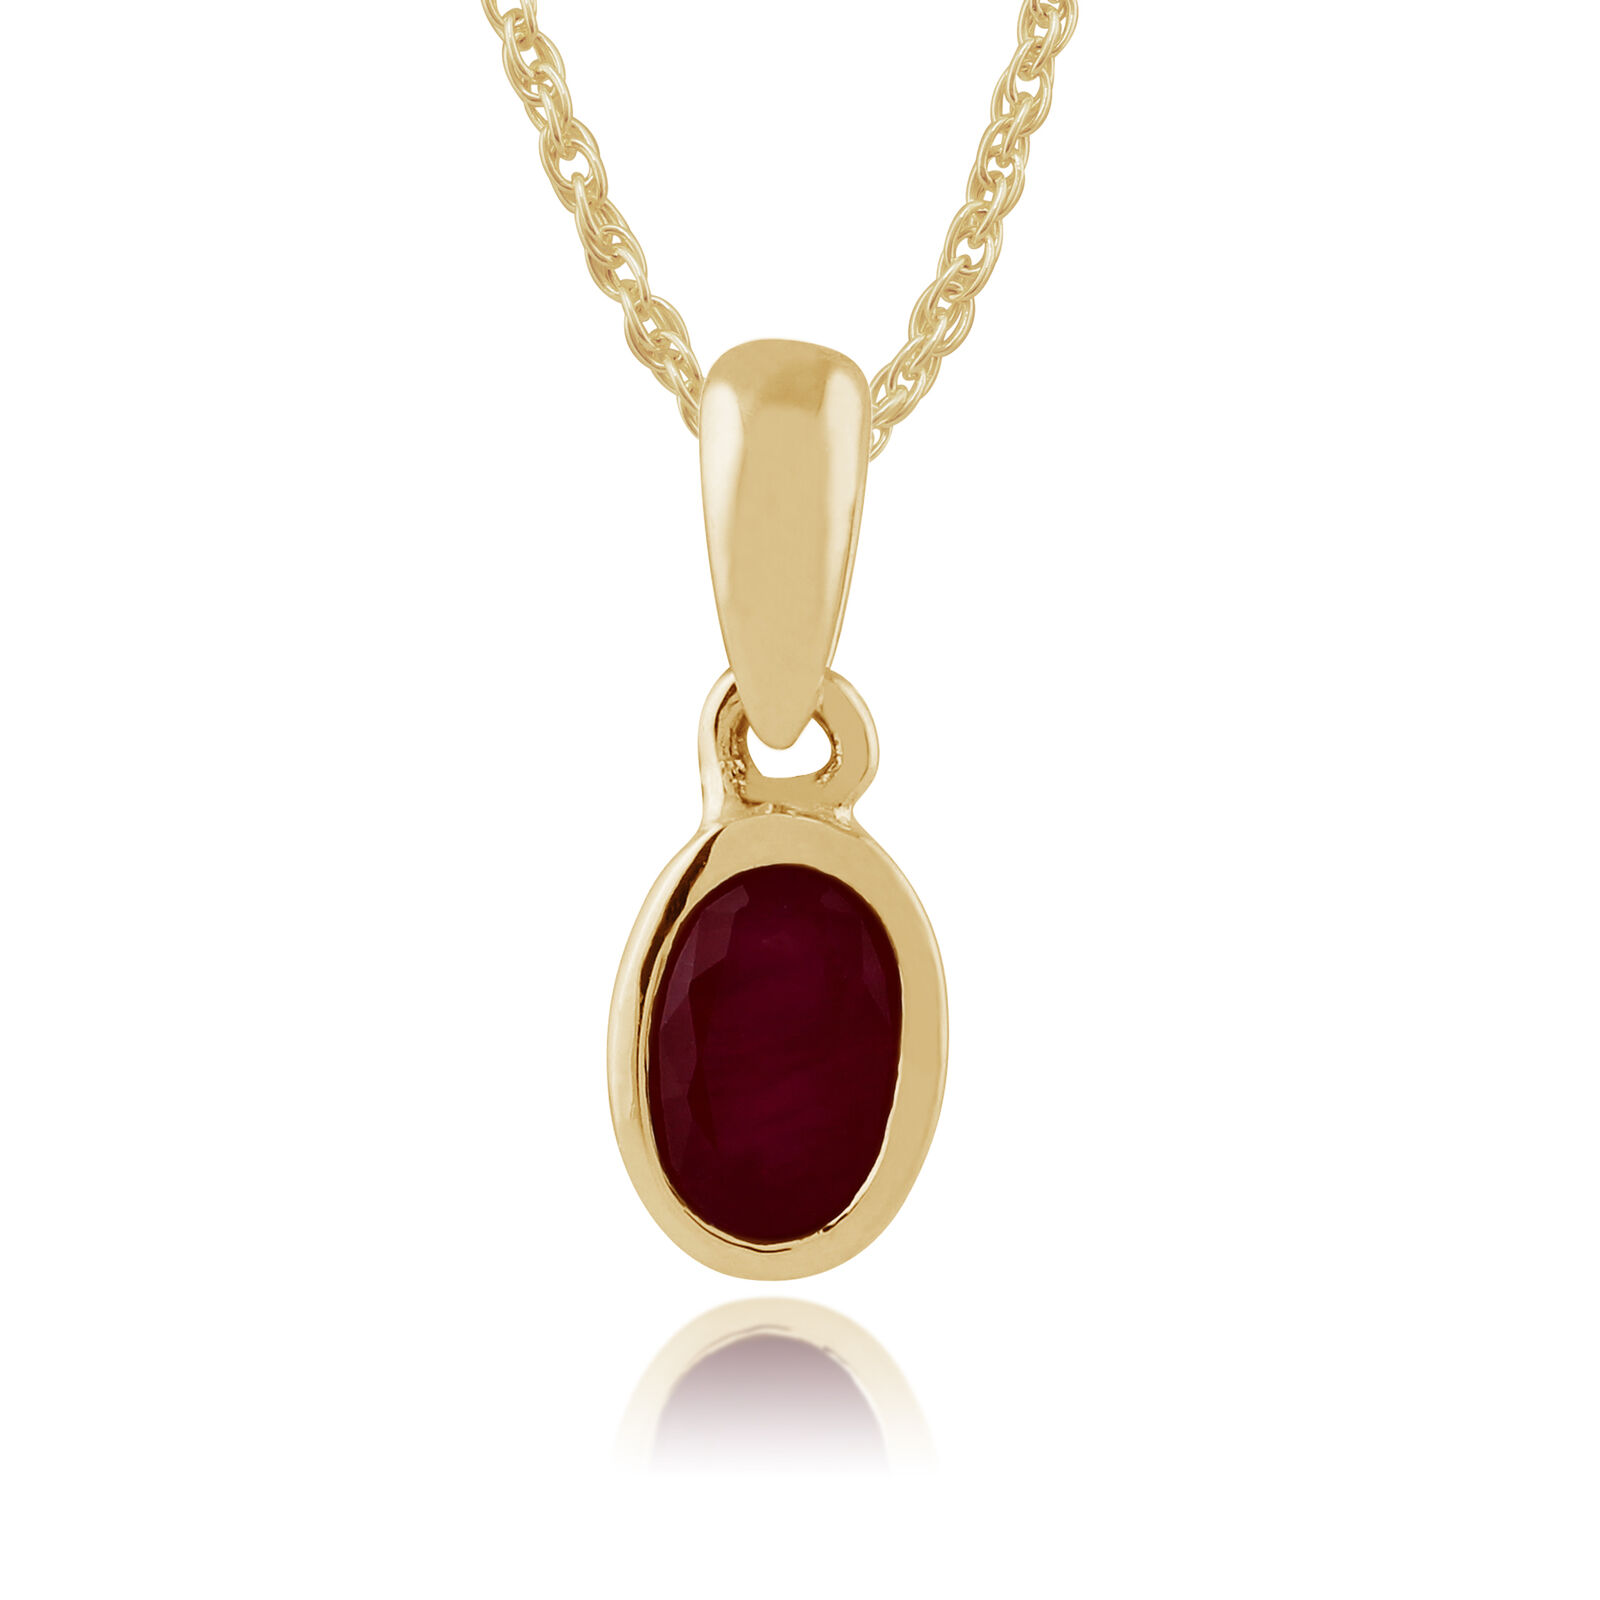 Gemondo 9ct Yellow gold Framed 0.32ct Ruby Oval Pendant on Chain